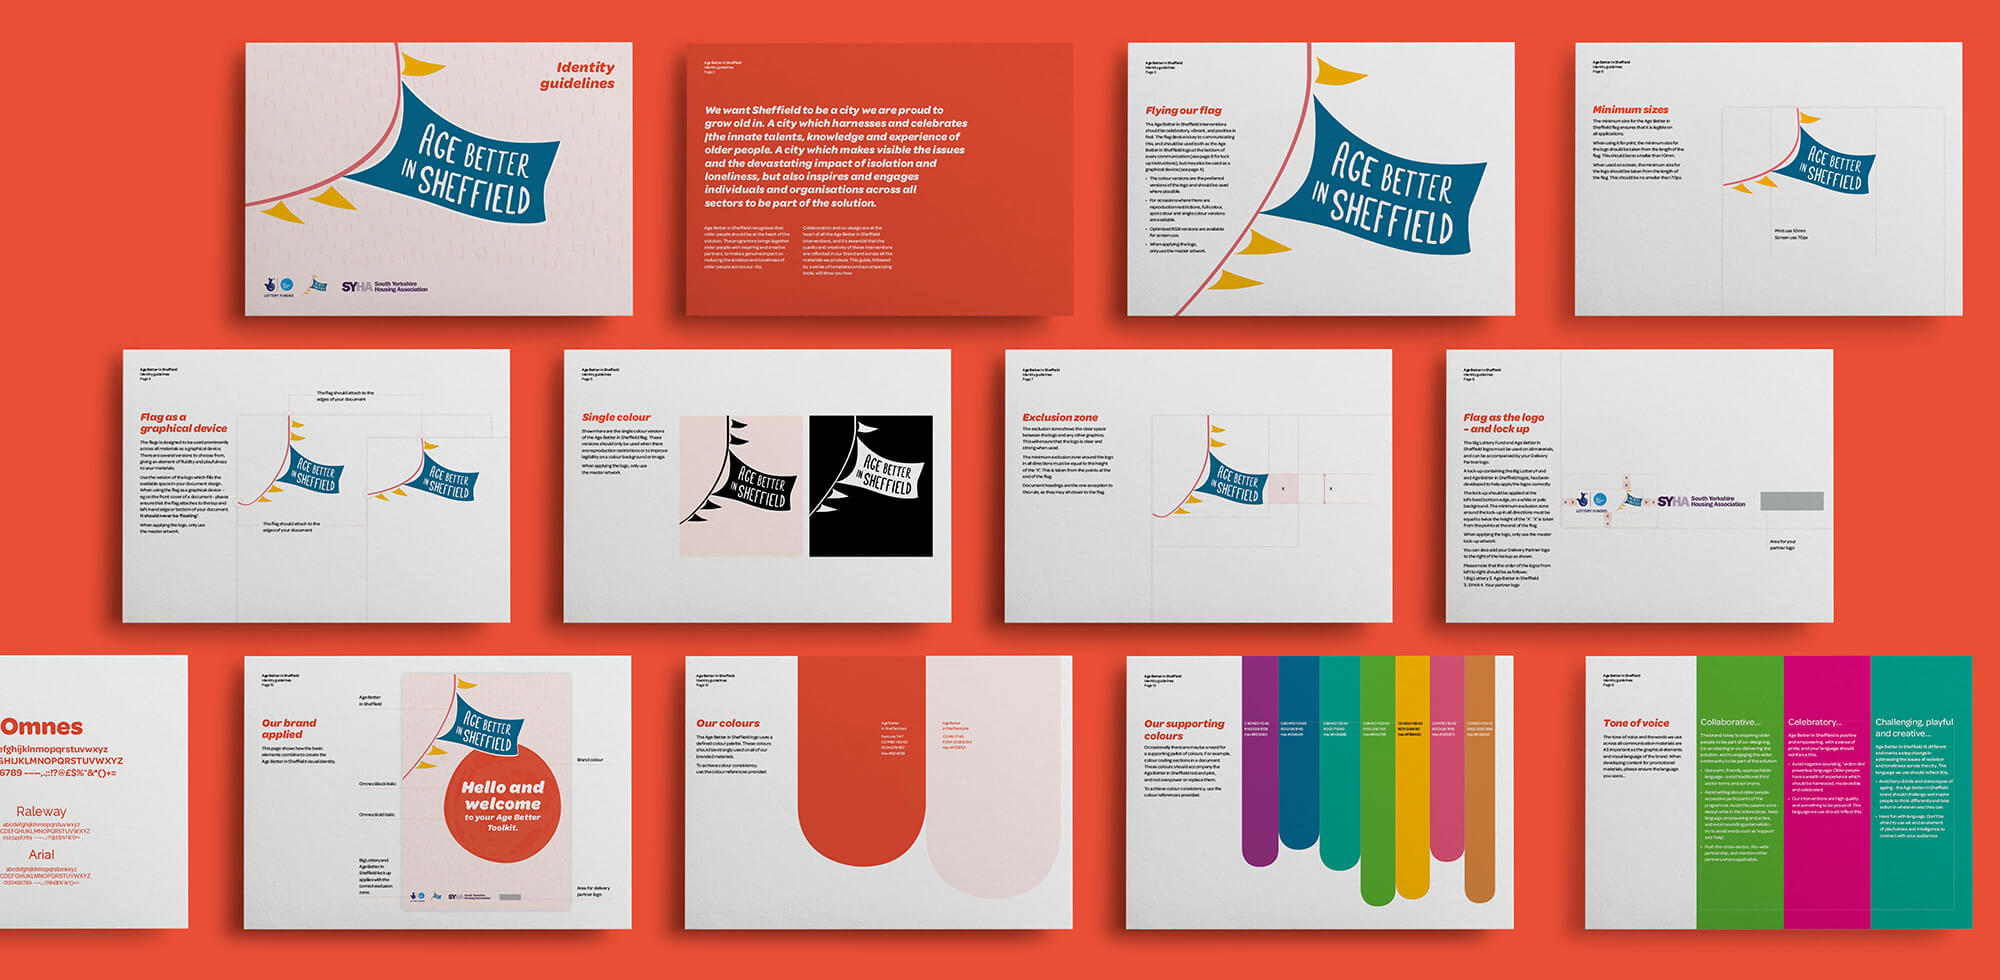 0236_SYHA-Age-Better-brand-guidelines-S4-1